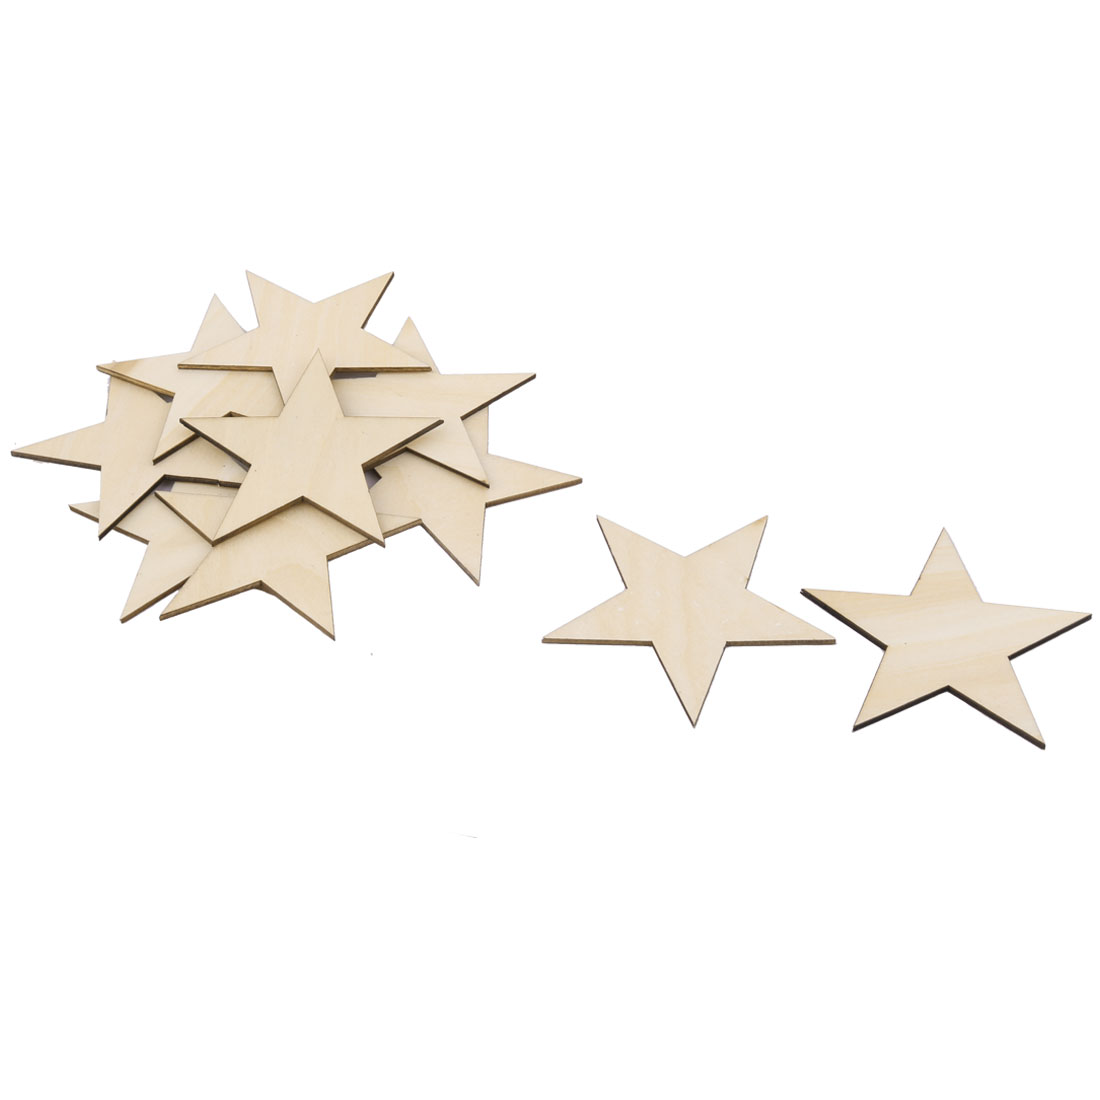 Wooden Star Shaped DIY Craft Christmas Tree Accessories Ornaments Beige 100 x 100mm 10pcs